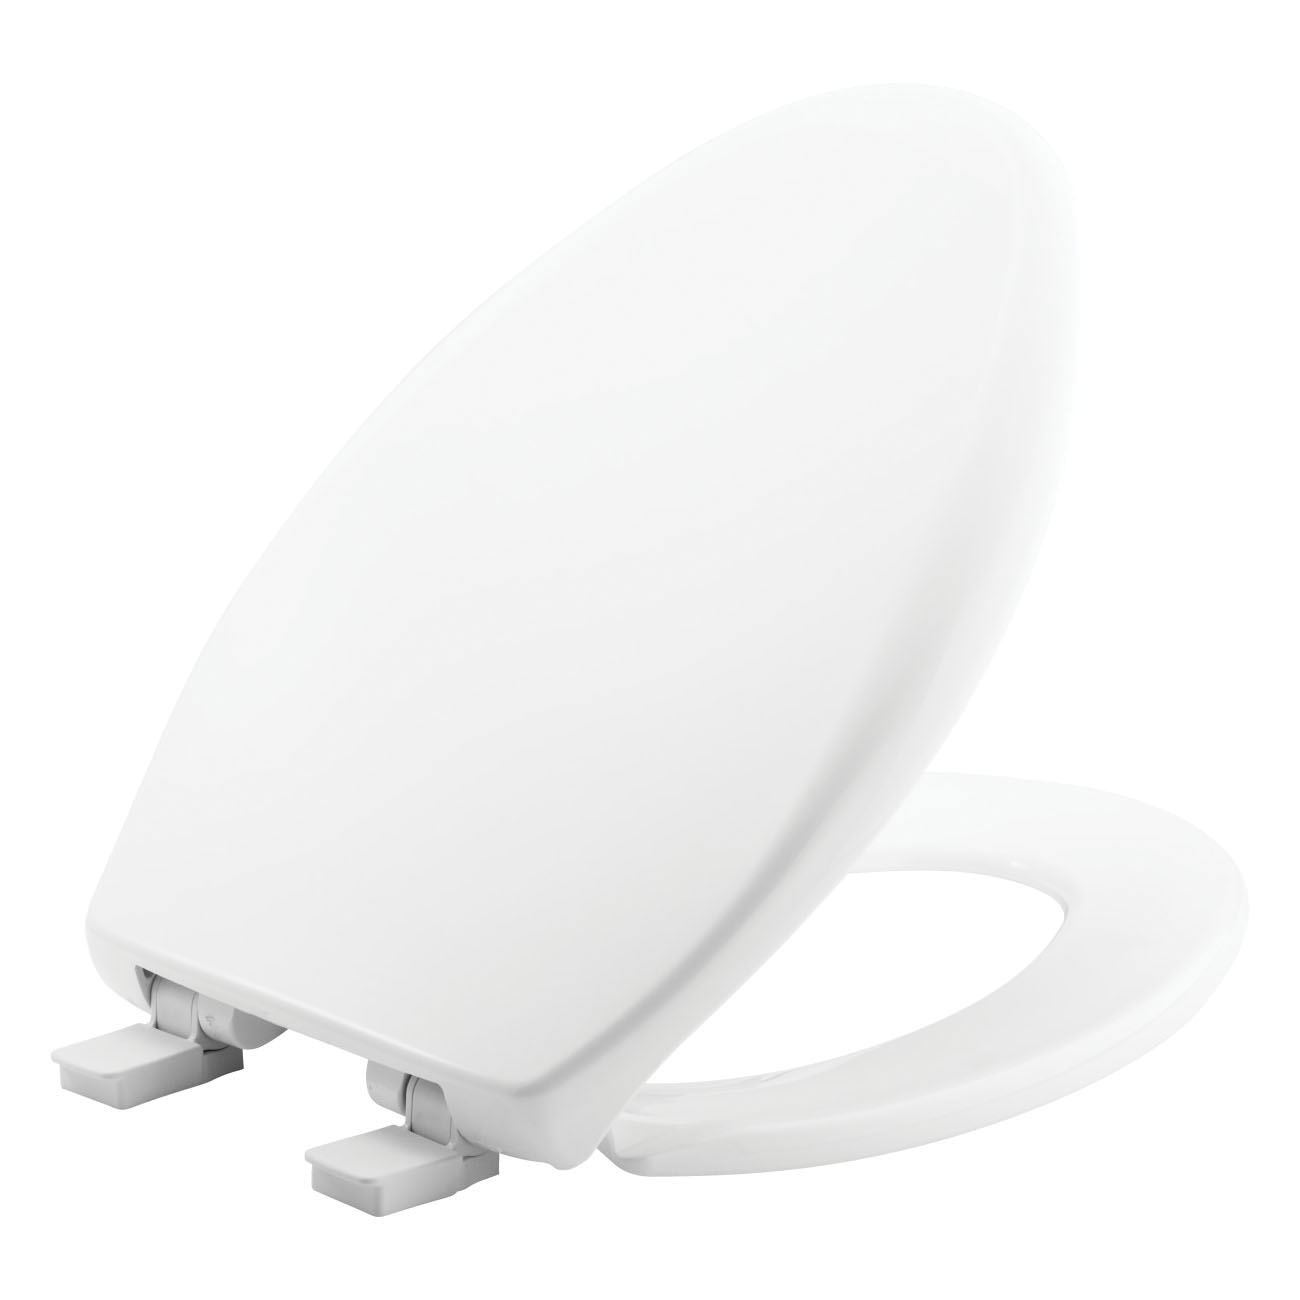 Bemis® 1200E4 000 Toilet Seat With Cover, AFFINITY ™, Elongated Bowl, Closed Front, Plastic, White, Adjustable Hinge, Domestic